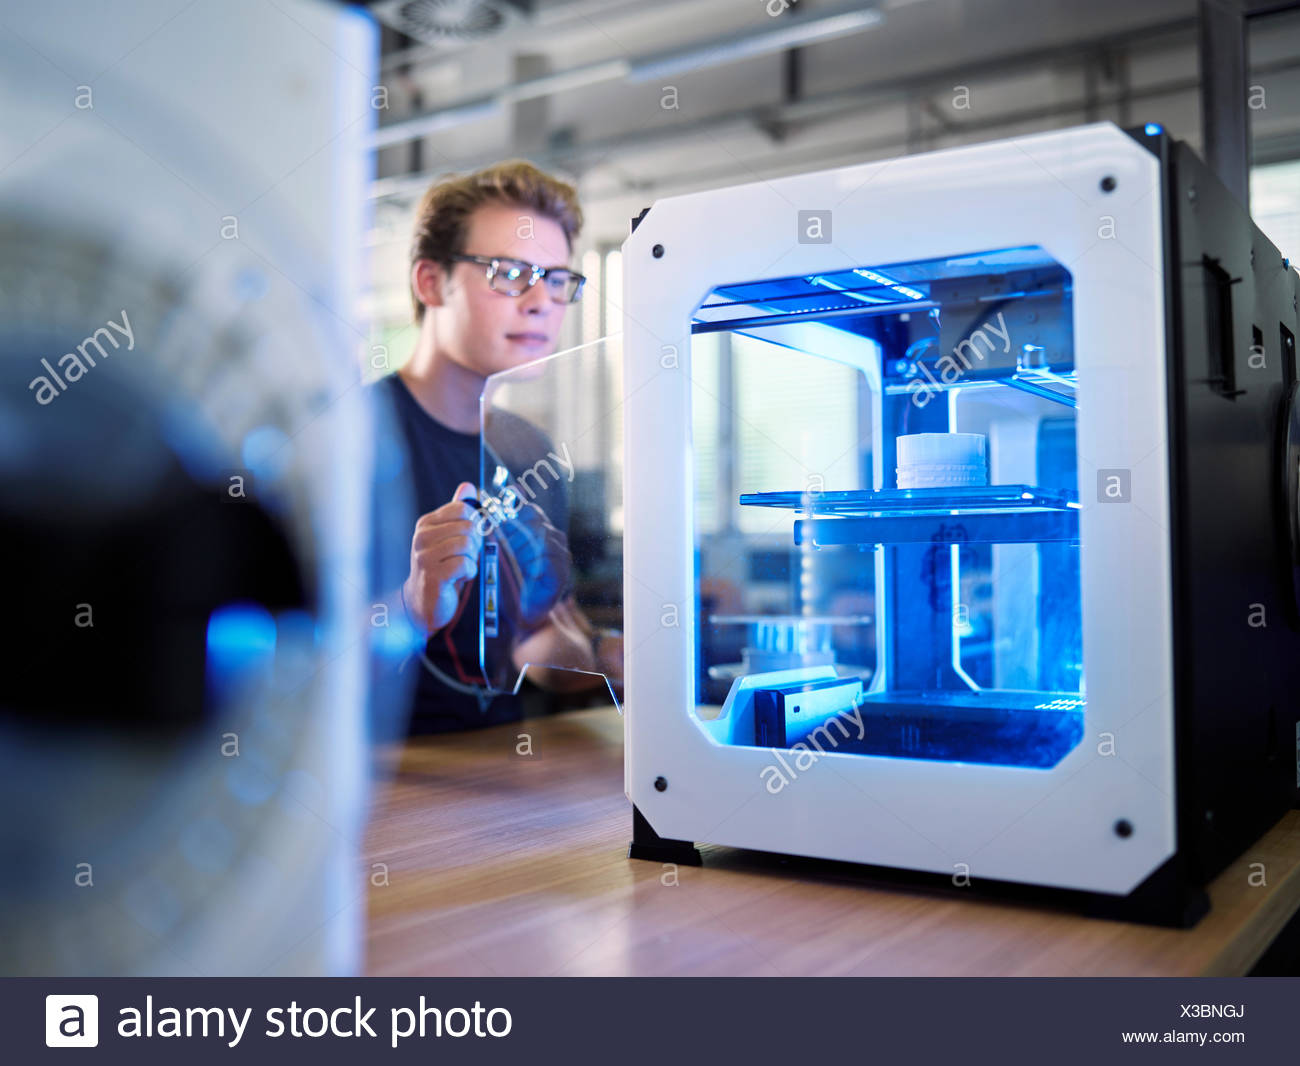 Employee, 25-30 years, opening 3D printer in production laboratory, FabLab, Wattens, Tyrol, Austria - Stock Image